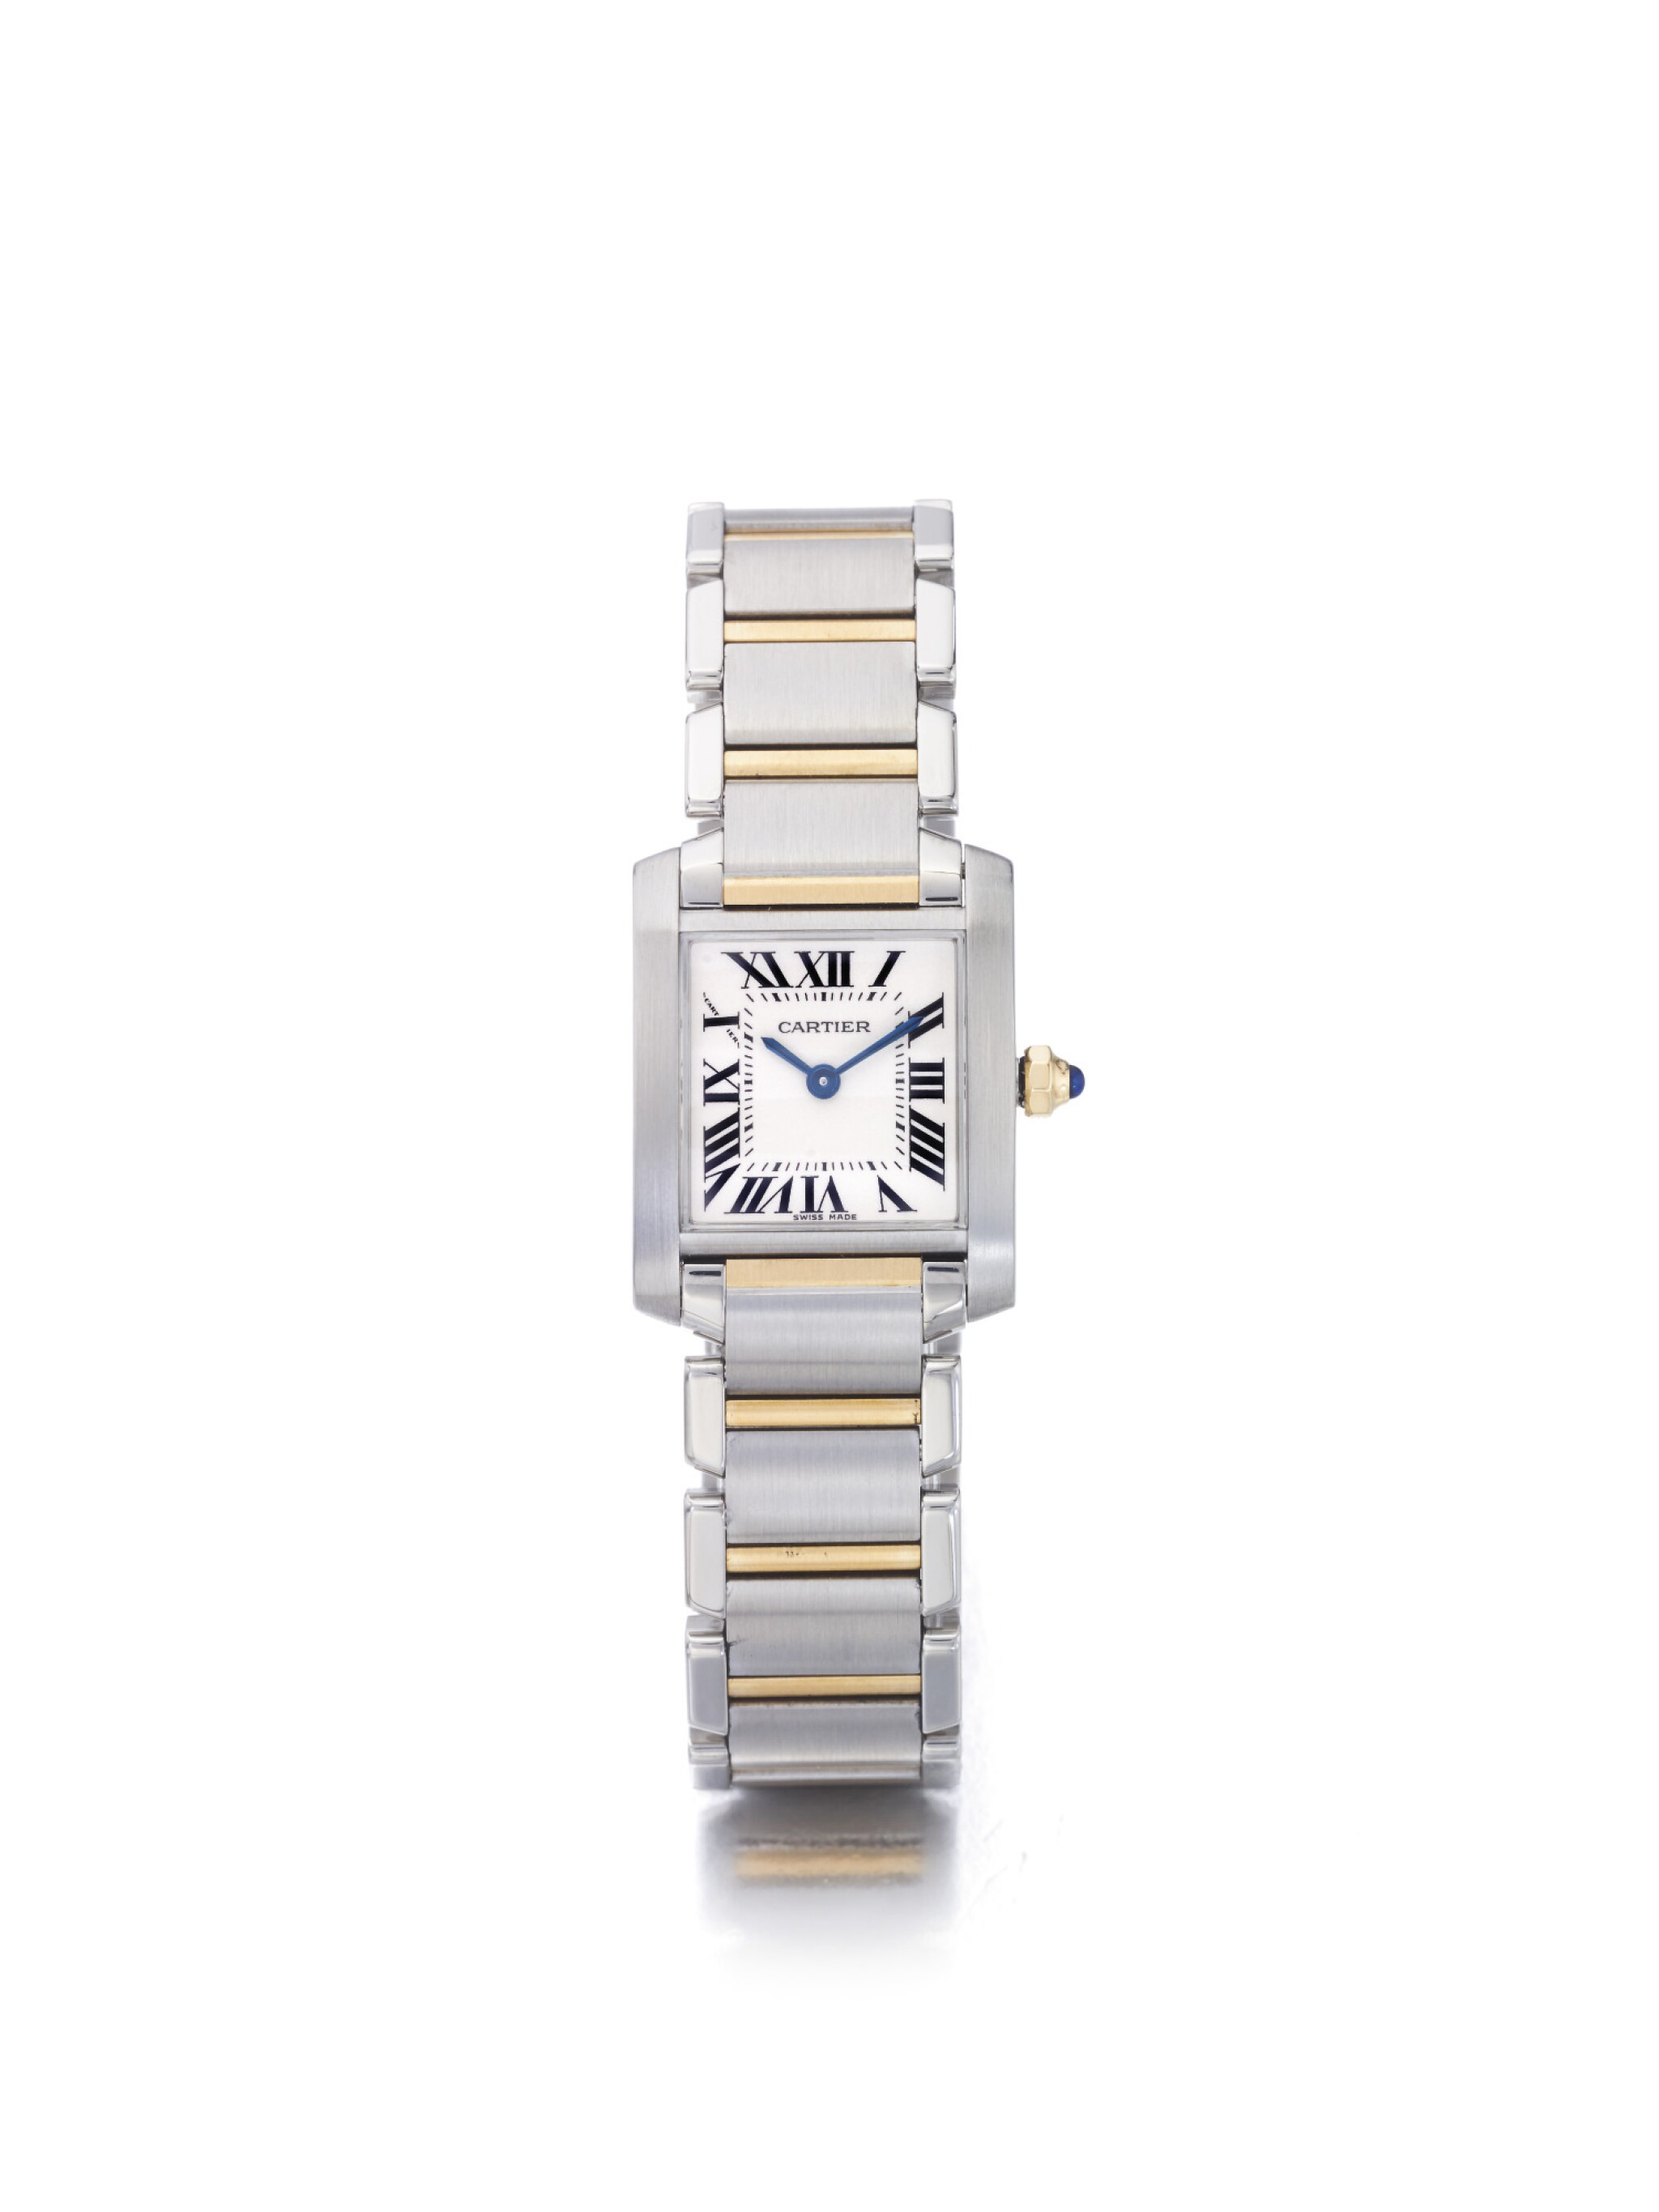 View 1 of Lot 10. CARTIER | TANK FRANCAISE REF 2384, A LADY'S STAINLESS STEEL AND YELLOW GOLD WRISTWATCH WITH BRACELET CIRCA 2005.